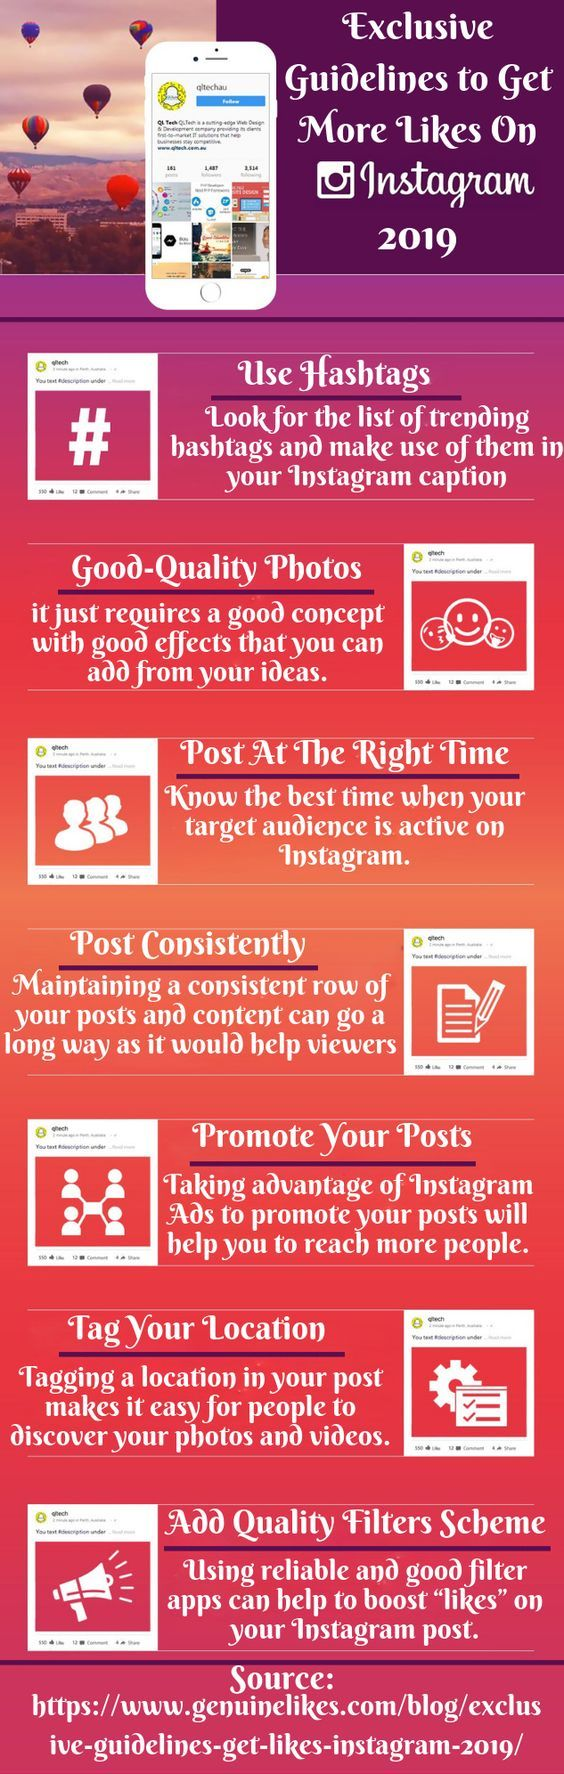 91e0d66122d979ecd27e3163fe93d9bc - How To Get Customers To Tag You On Instagram